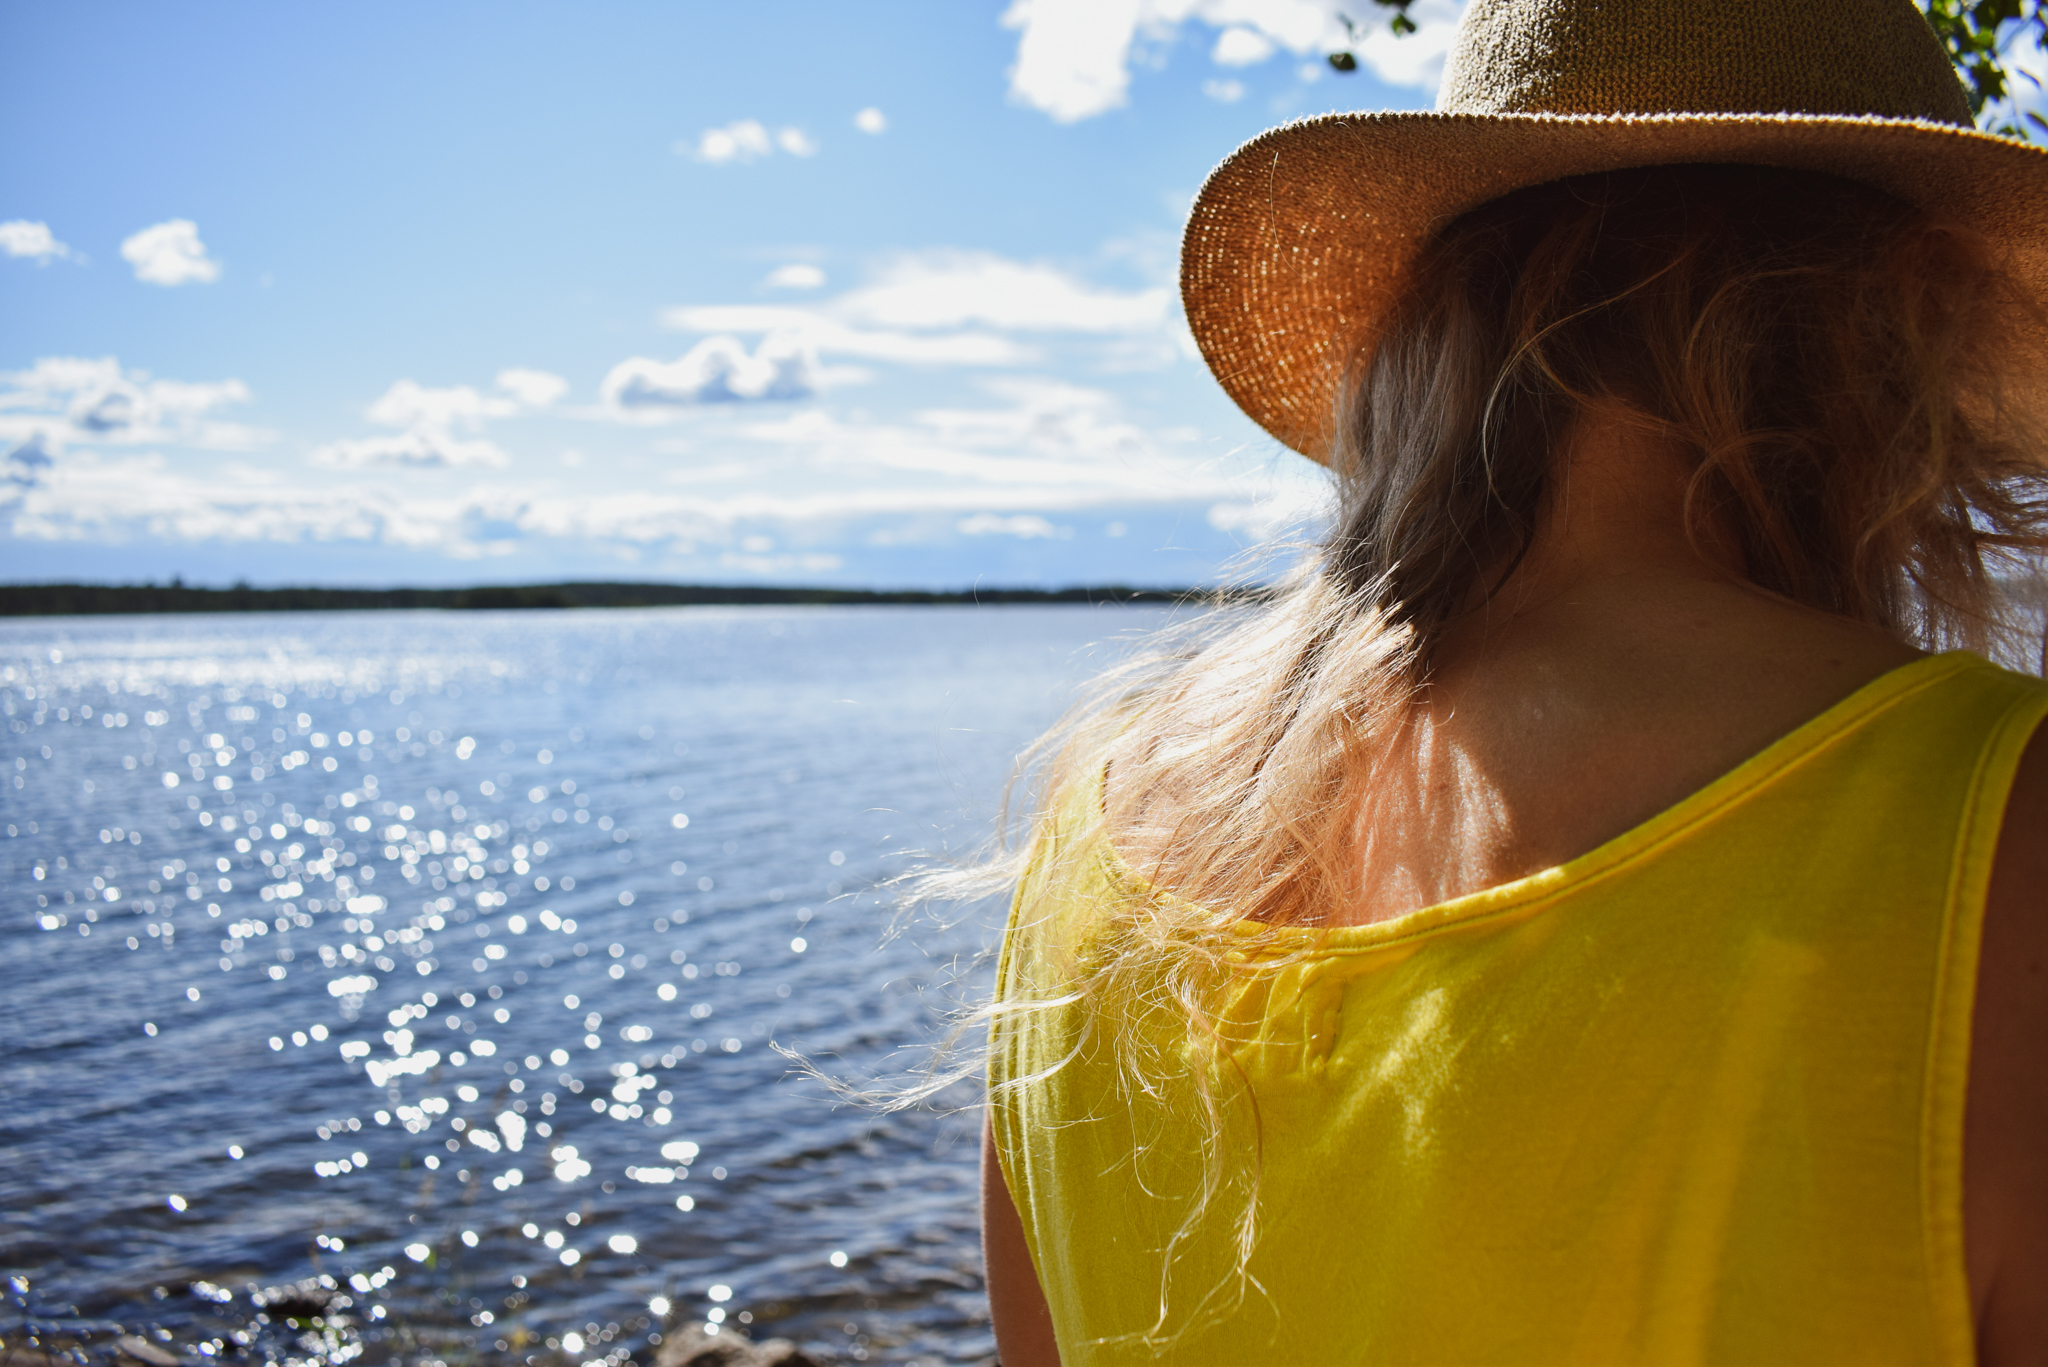 Finnish summer ways to connect with nature and yourself by enjoying the warmth of the sun